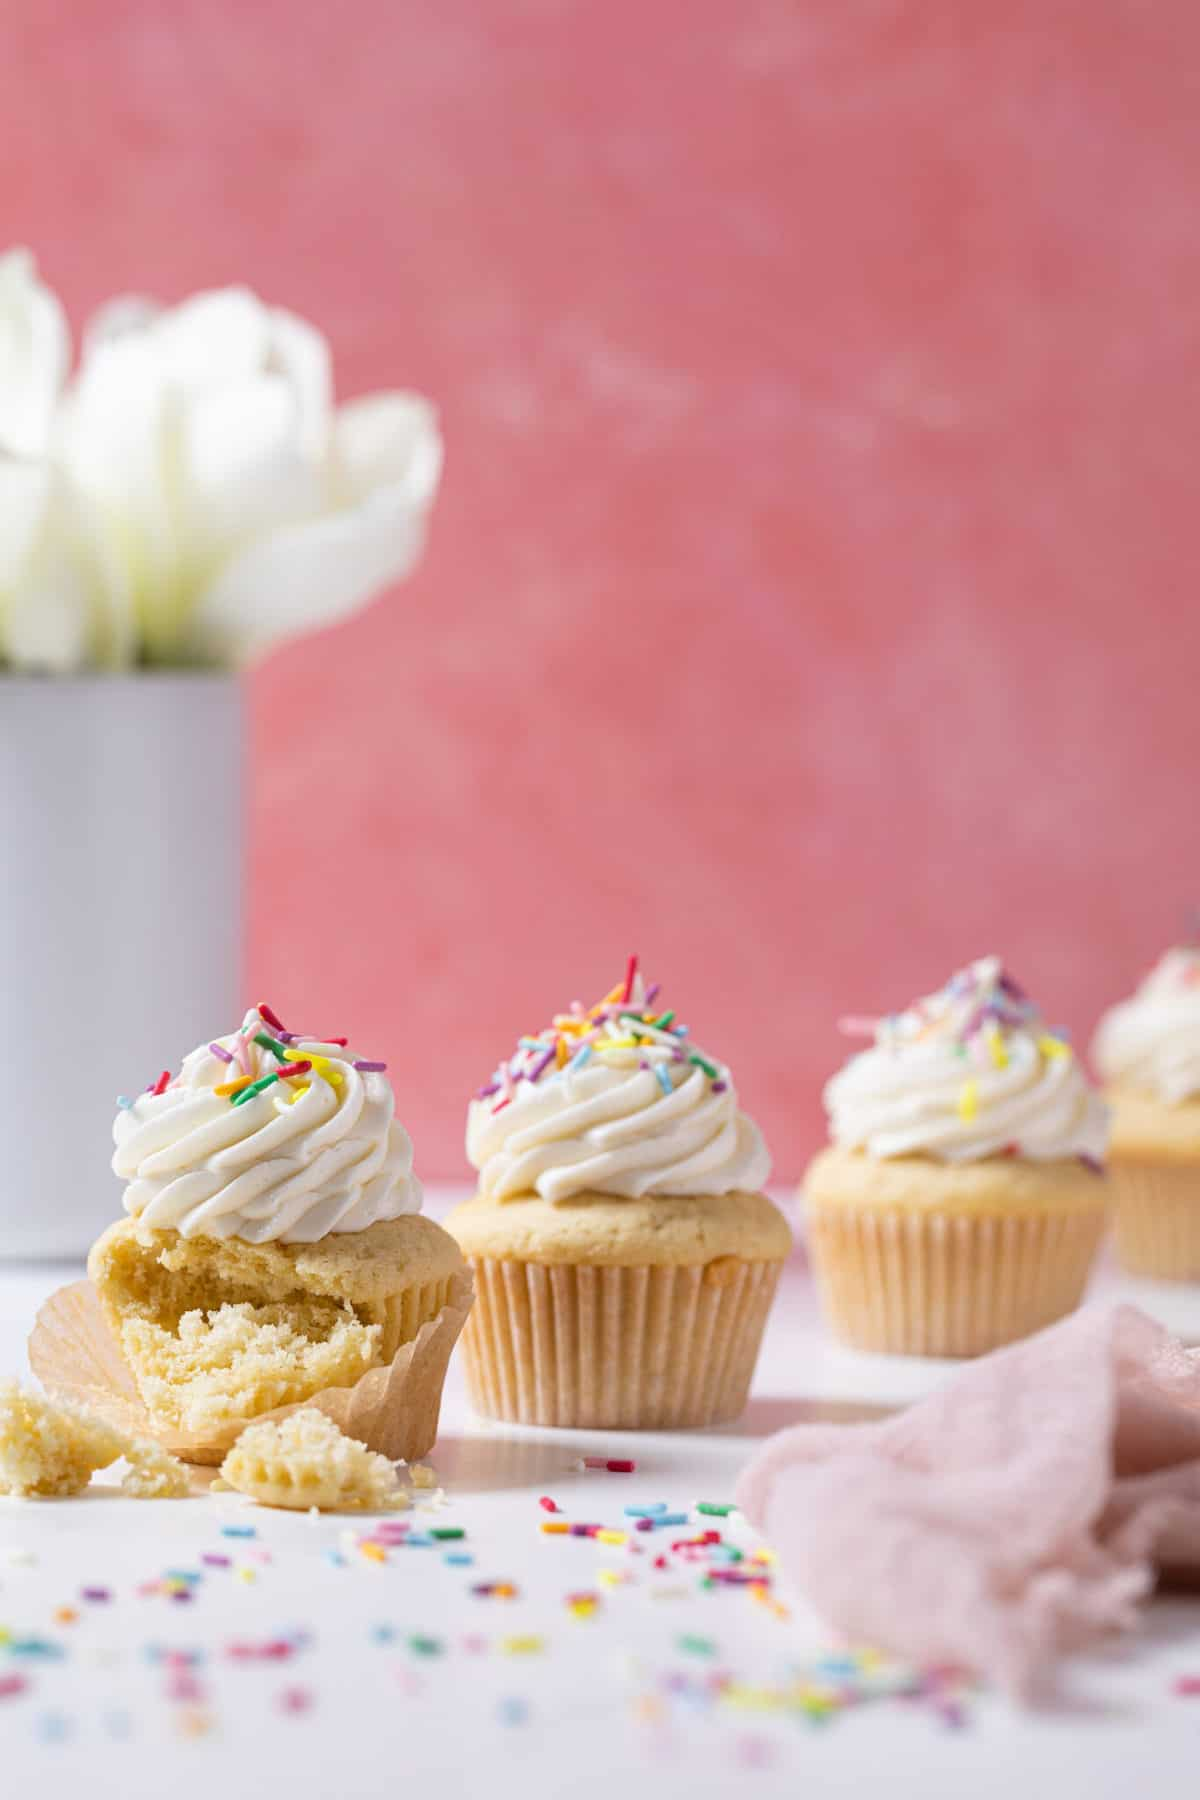 The Best Vanilla Cupcakes with Buttercream Frosting